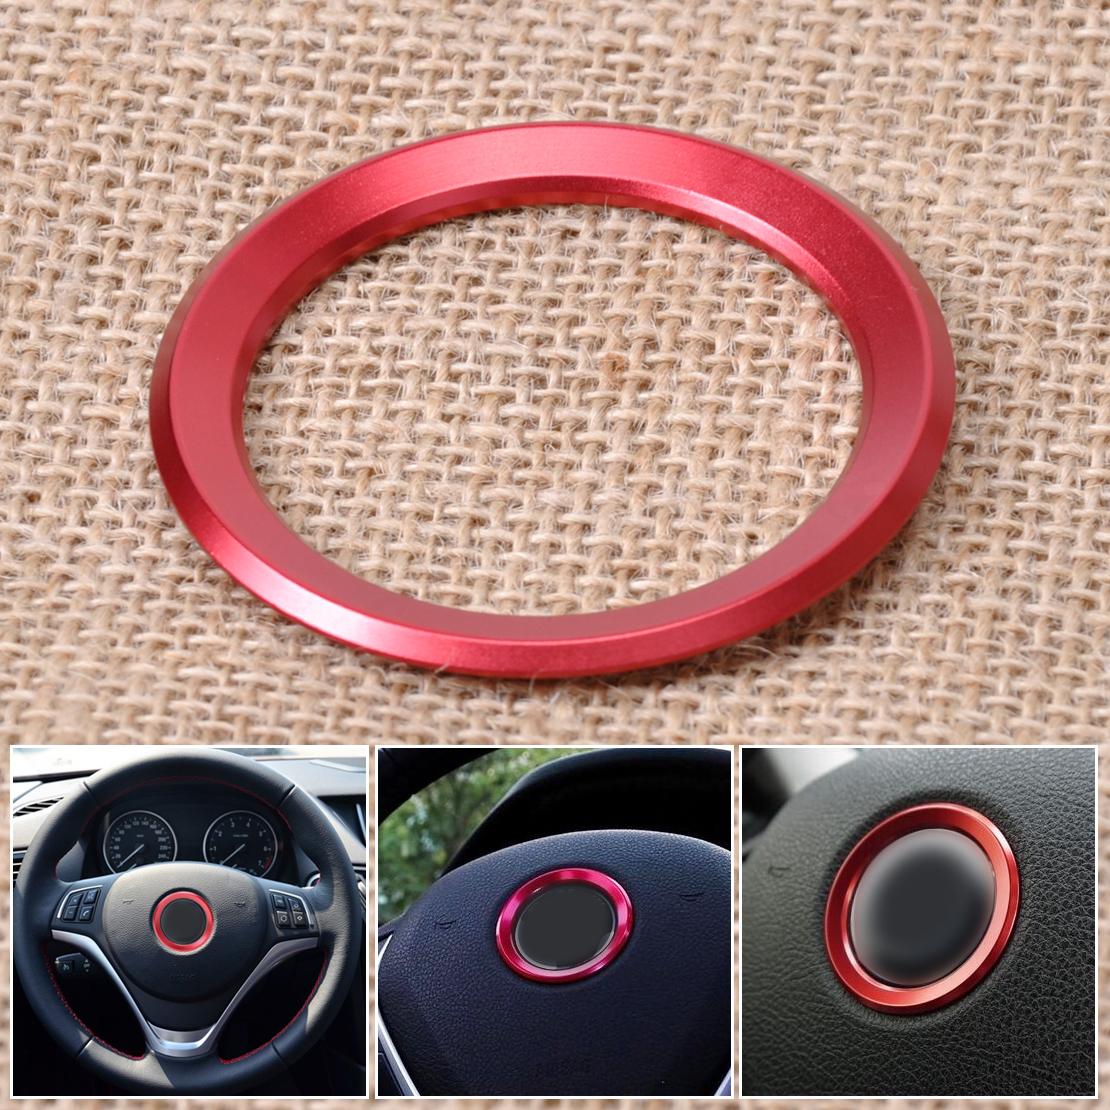 Decor Steering Wheel Cover Trim Aluminum Red For BMW 1 3 4 5 7 M3 M5 X1 X3 X5 X6